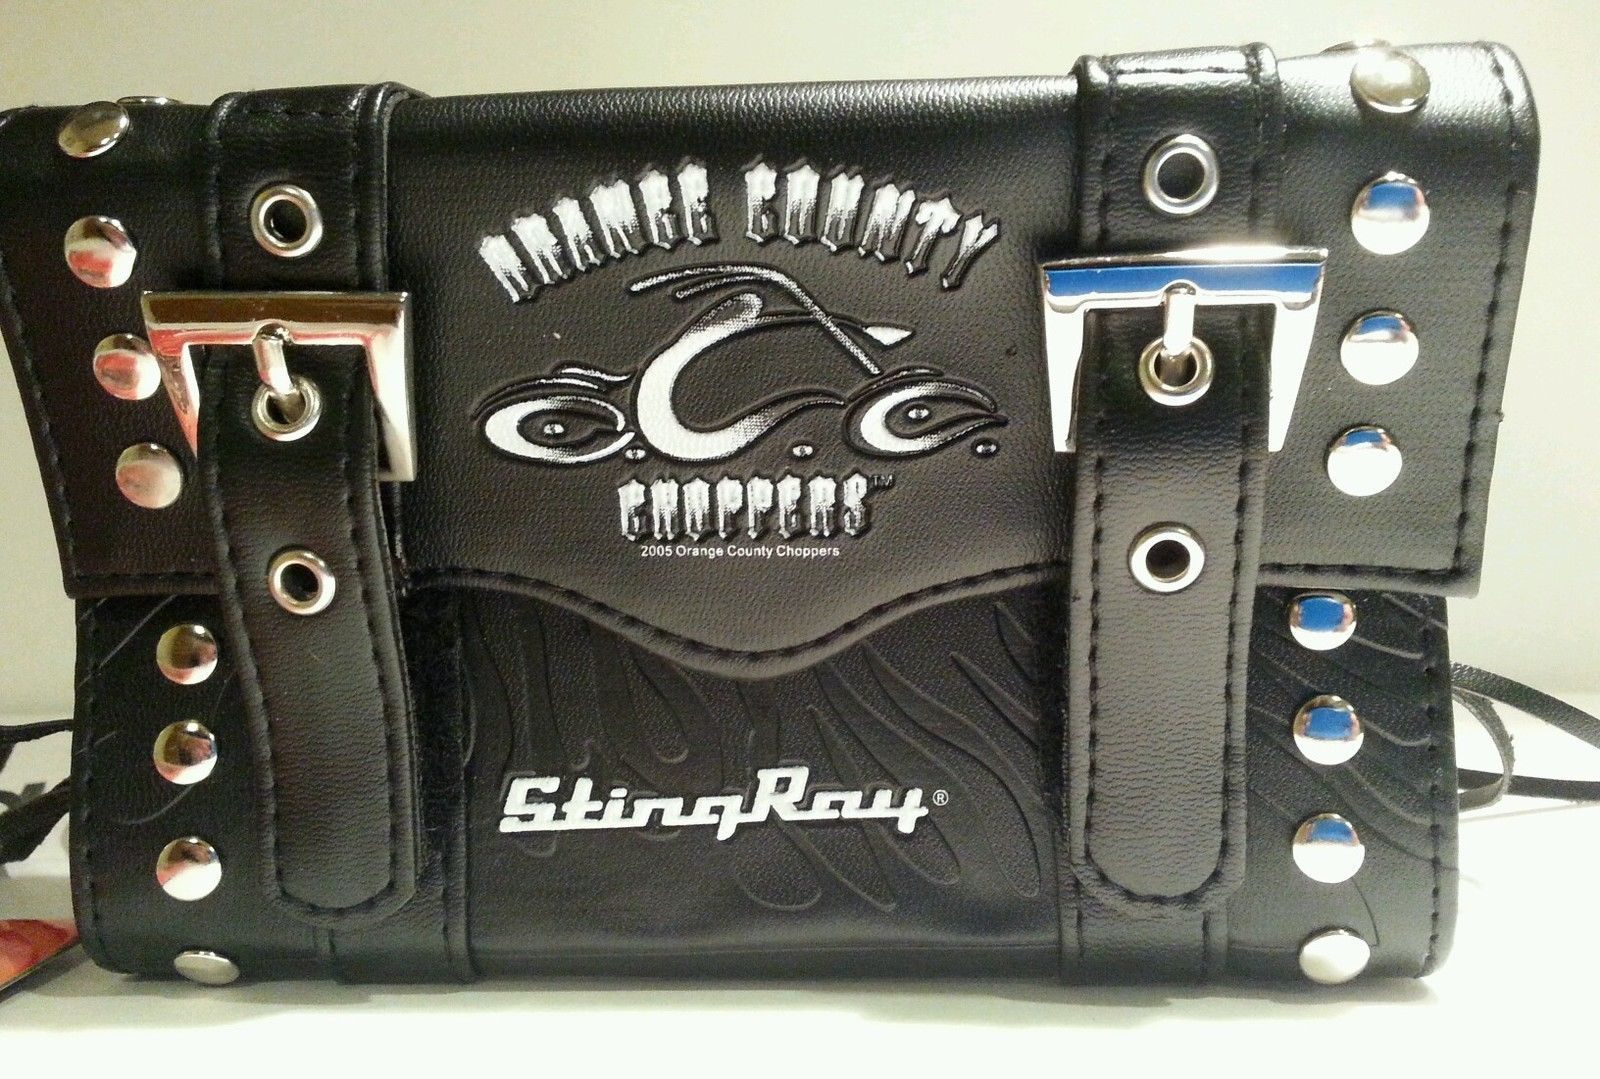 2 Orange County Choppers genuine authentic stingray saddle bags